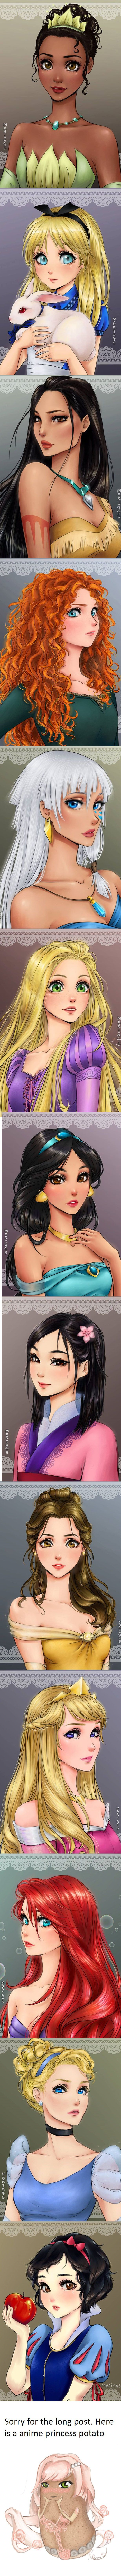 If Disney Princesses were Anime Characters. My fav are Mulan and Pocahontus also Merida (by mari945)